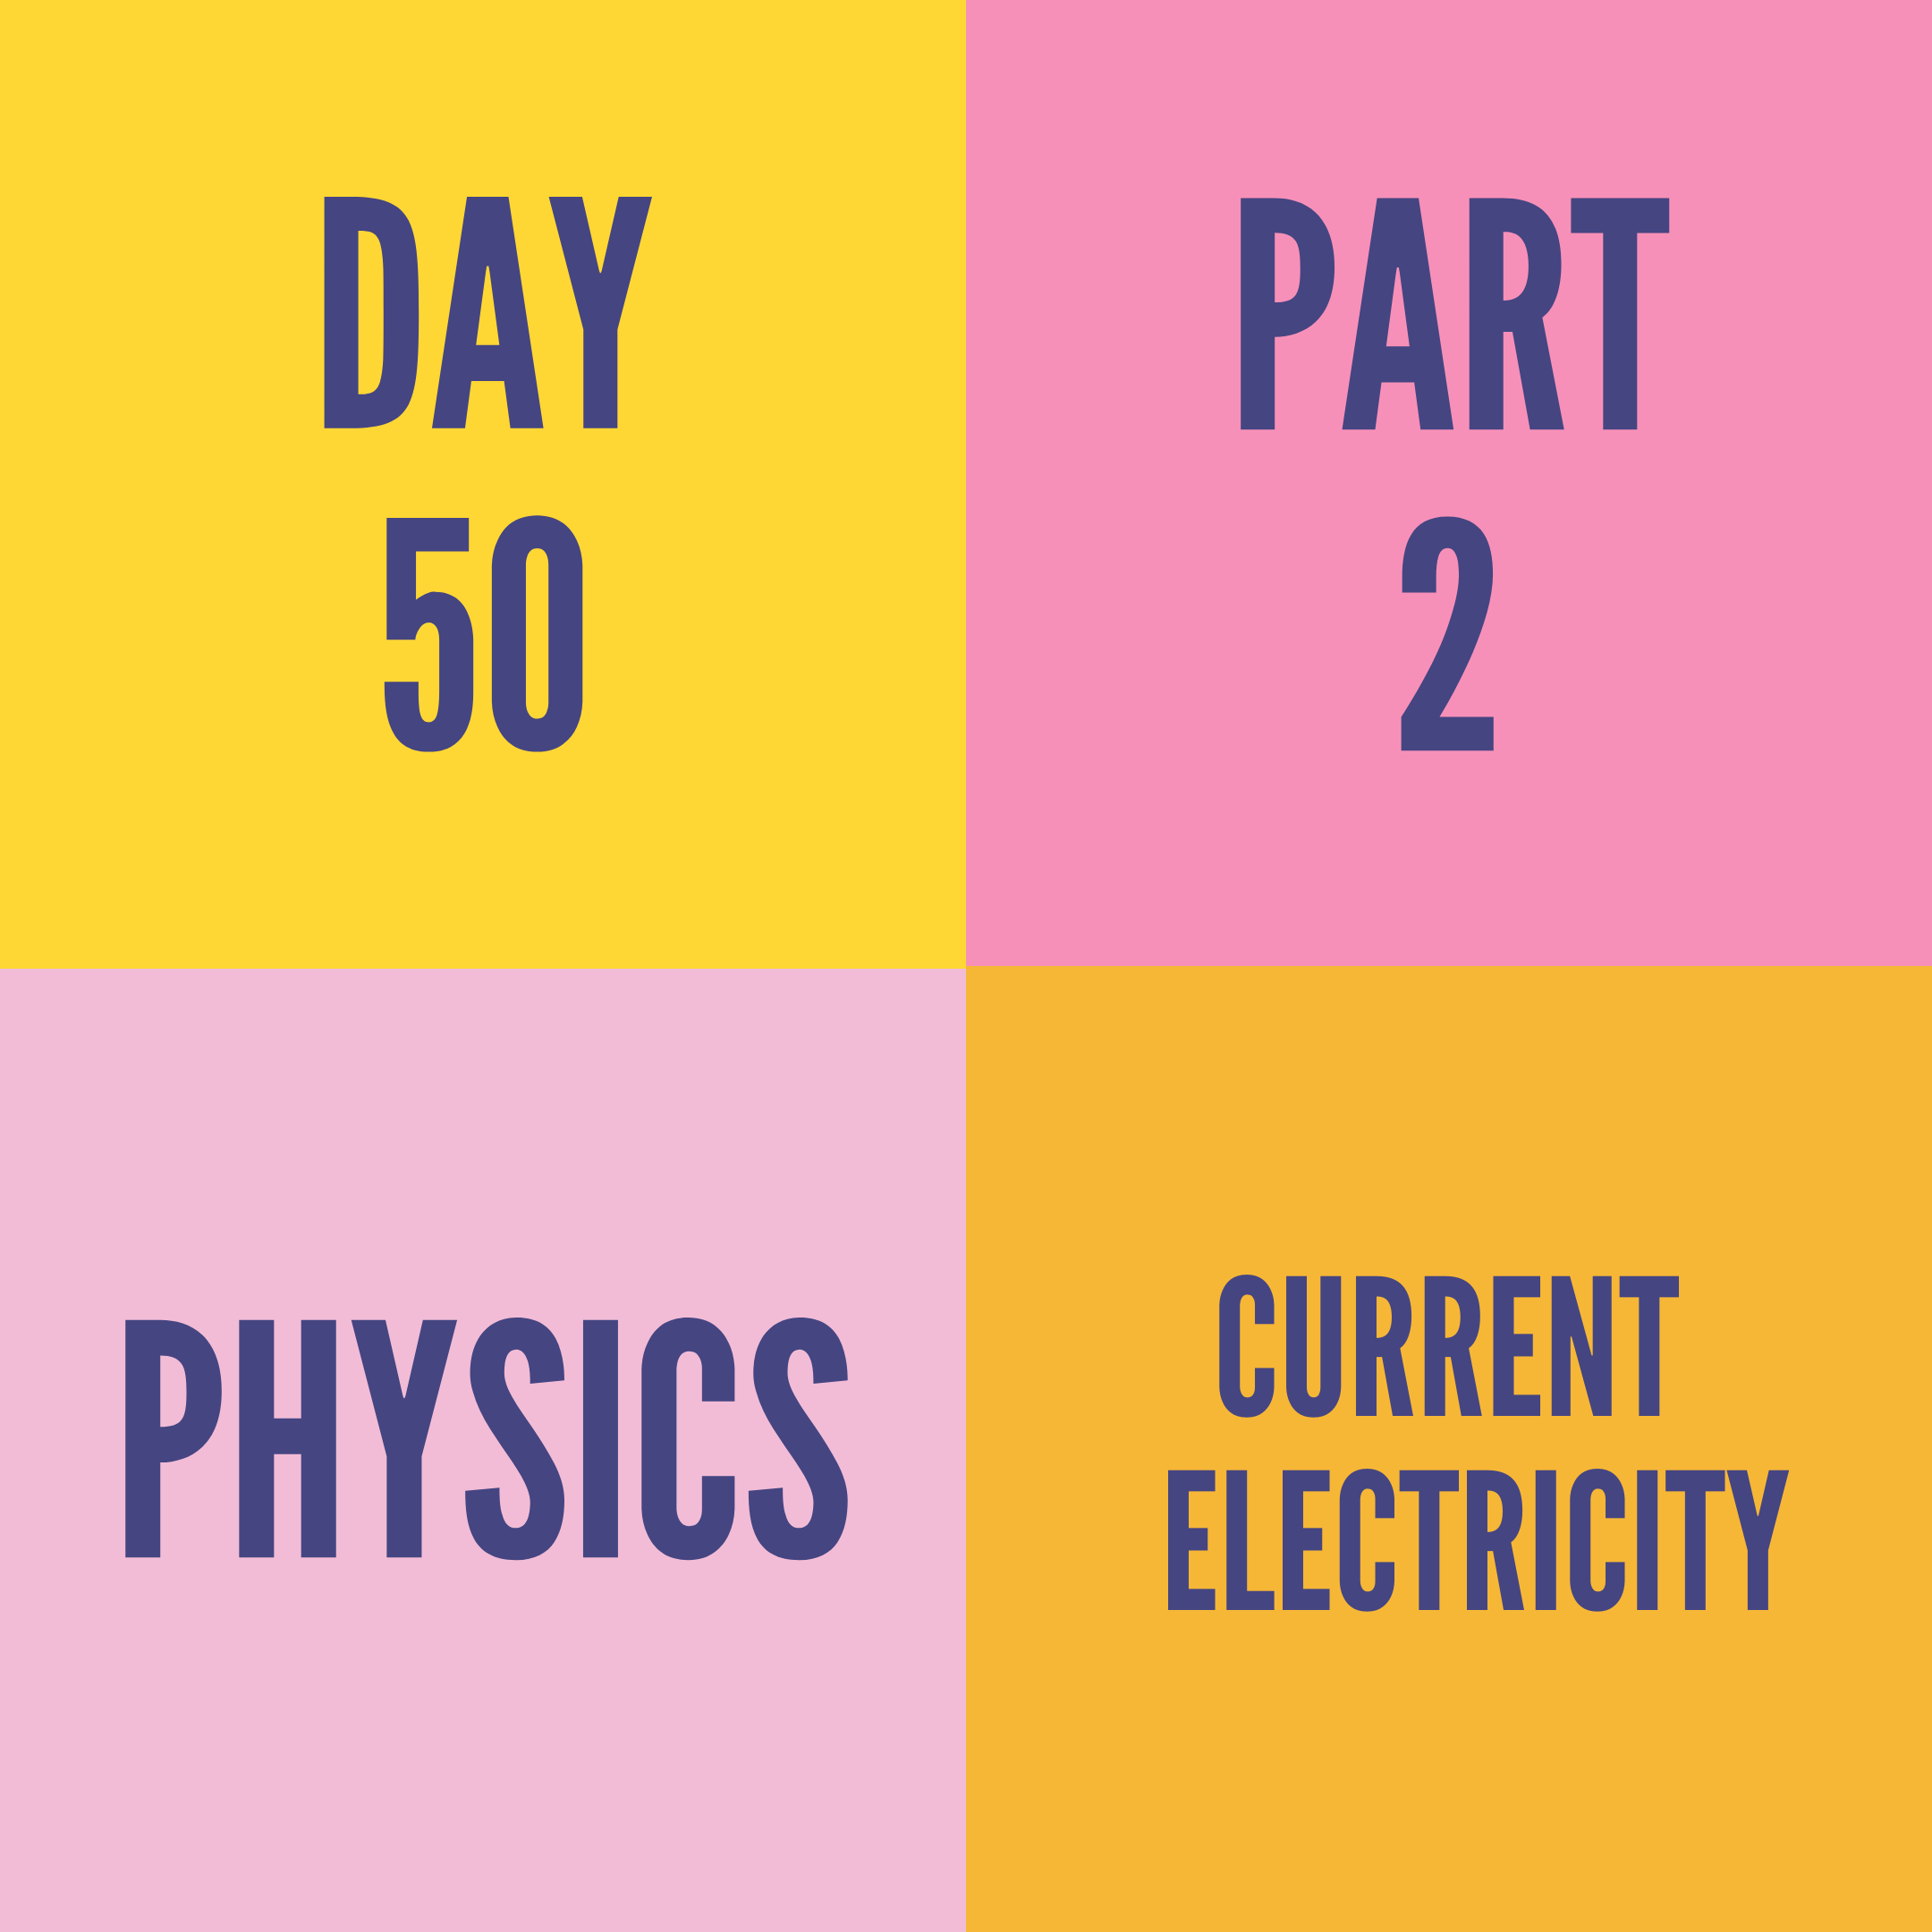 DAY-50 PART-2  CURRENT ELECTRICITY